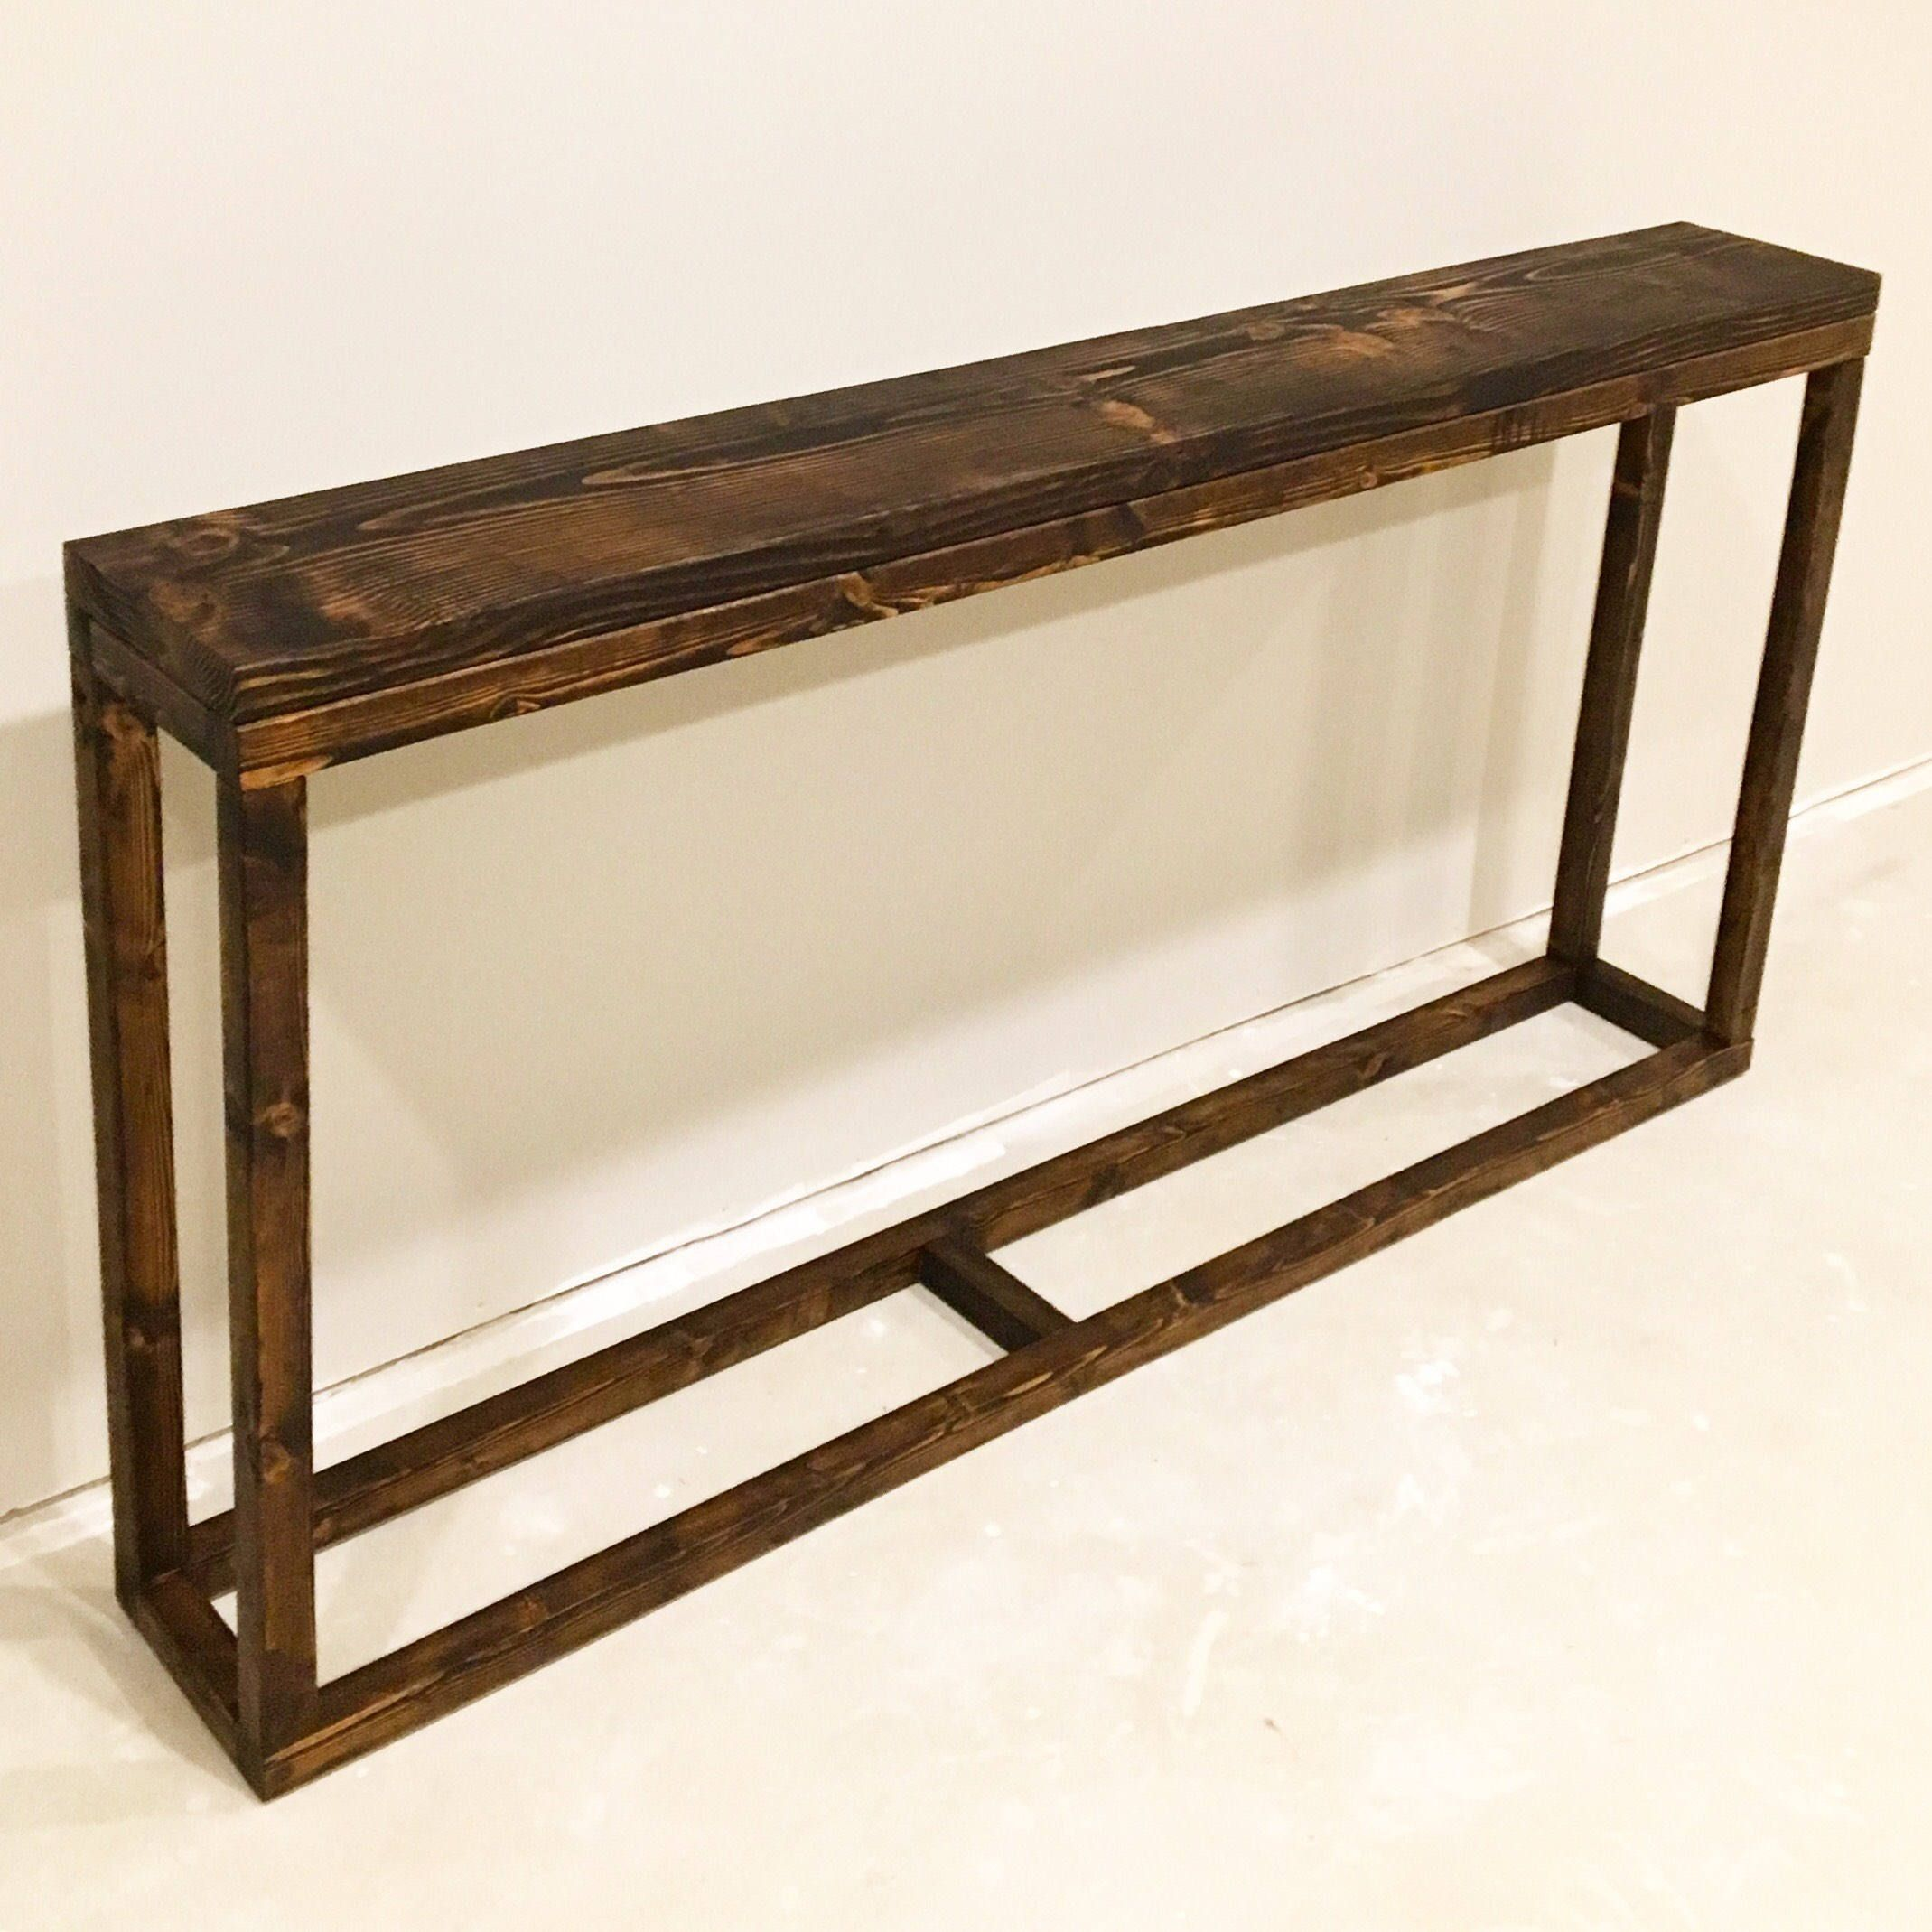 Long Console Table Narrow Console Table Long Entryway Table Behind Couch Table Behind Sofa Table Rustic Industrial Table Behind Couch Narrow Console Table Behind Sofa Table